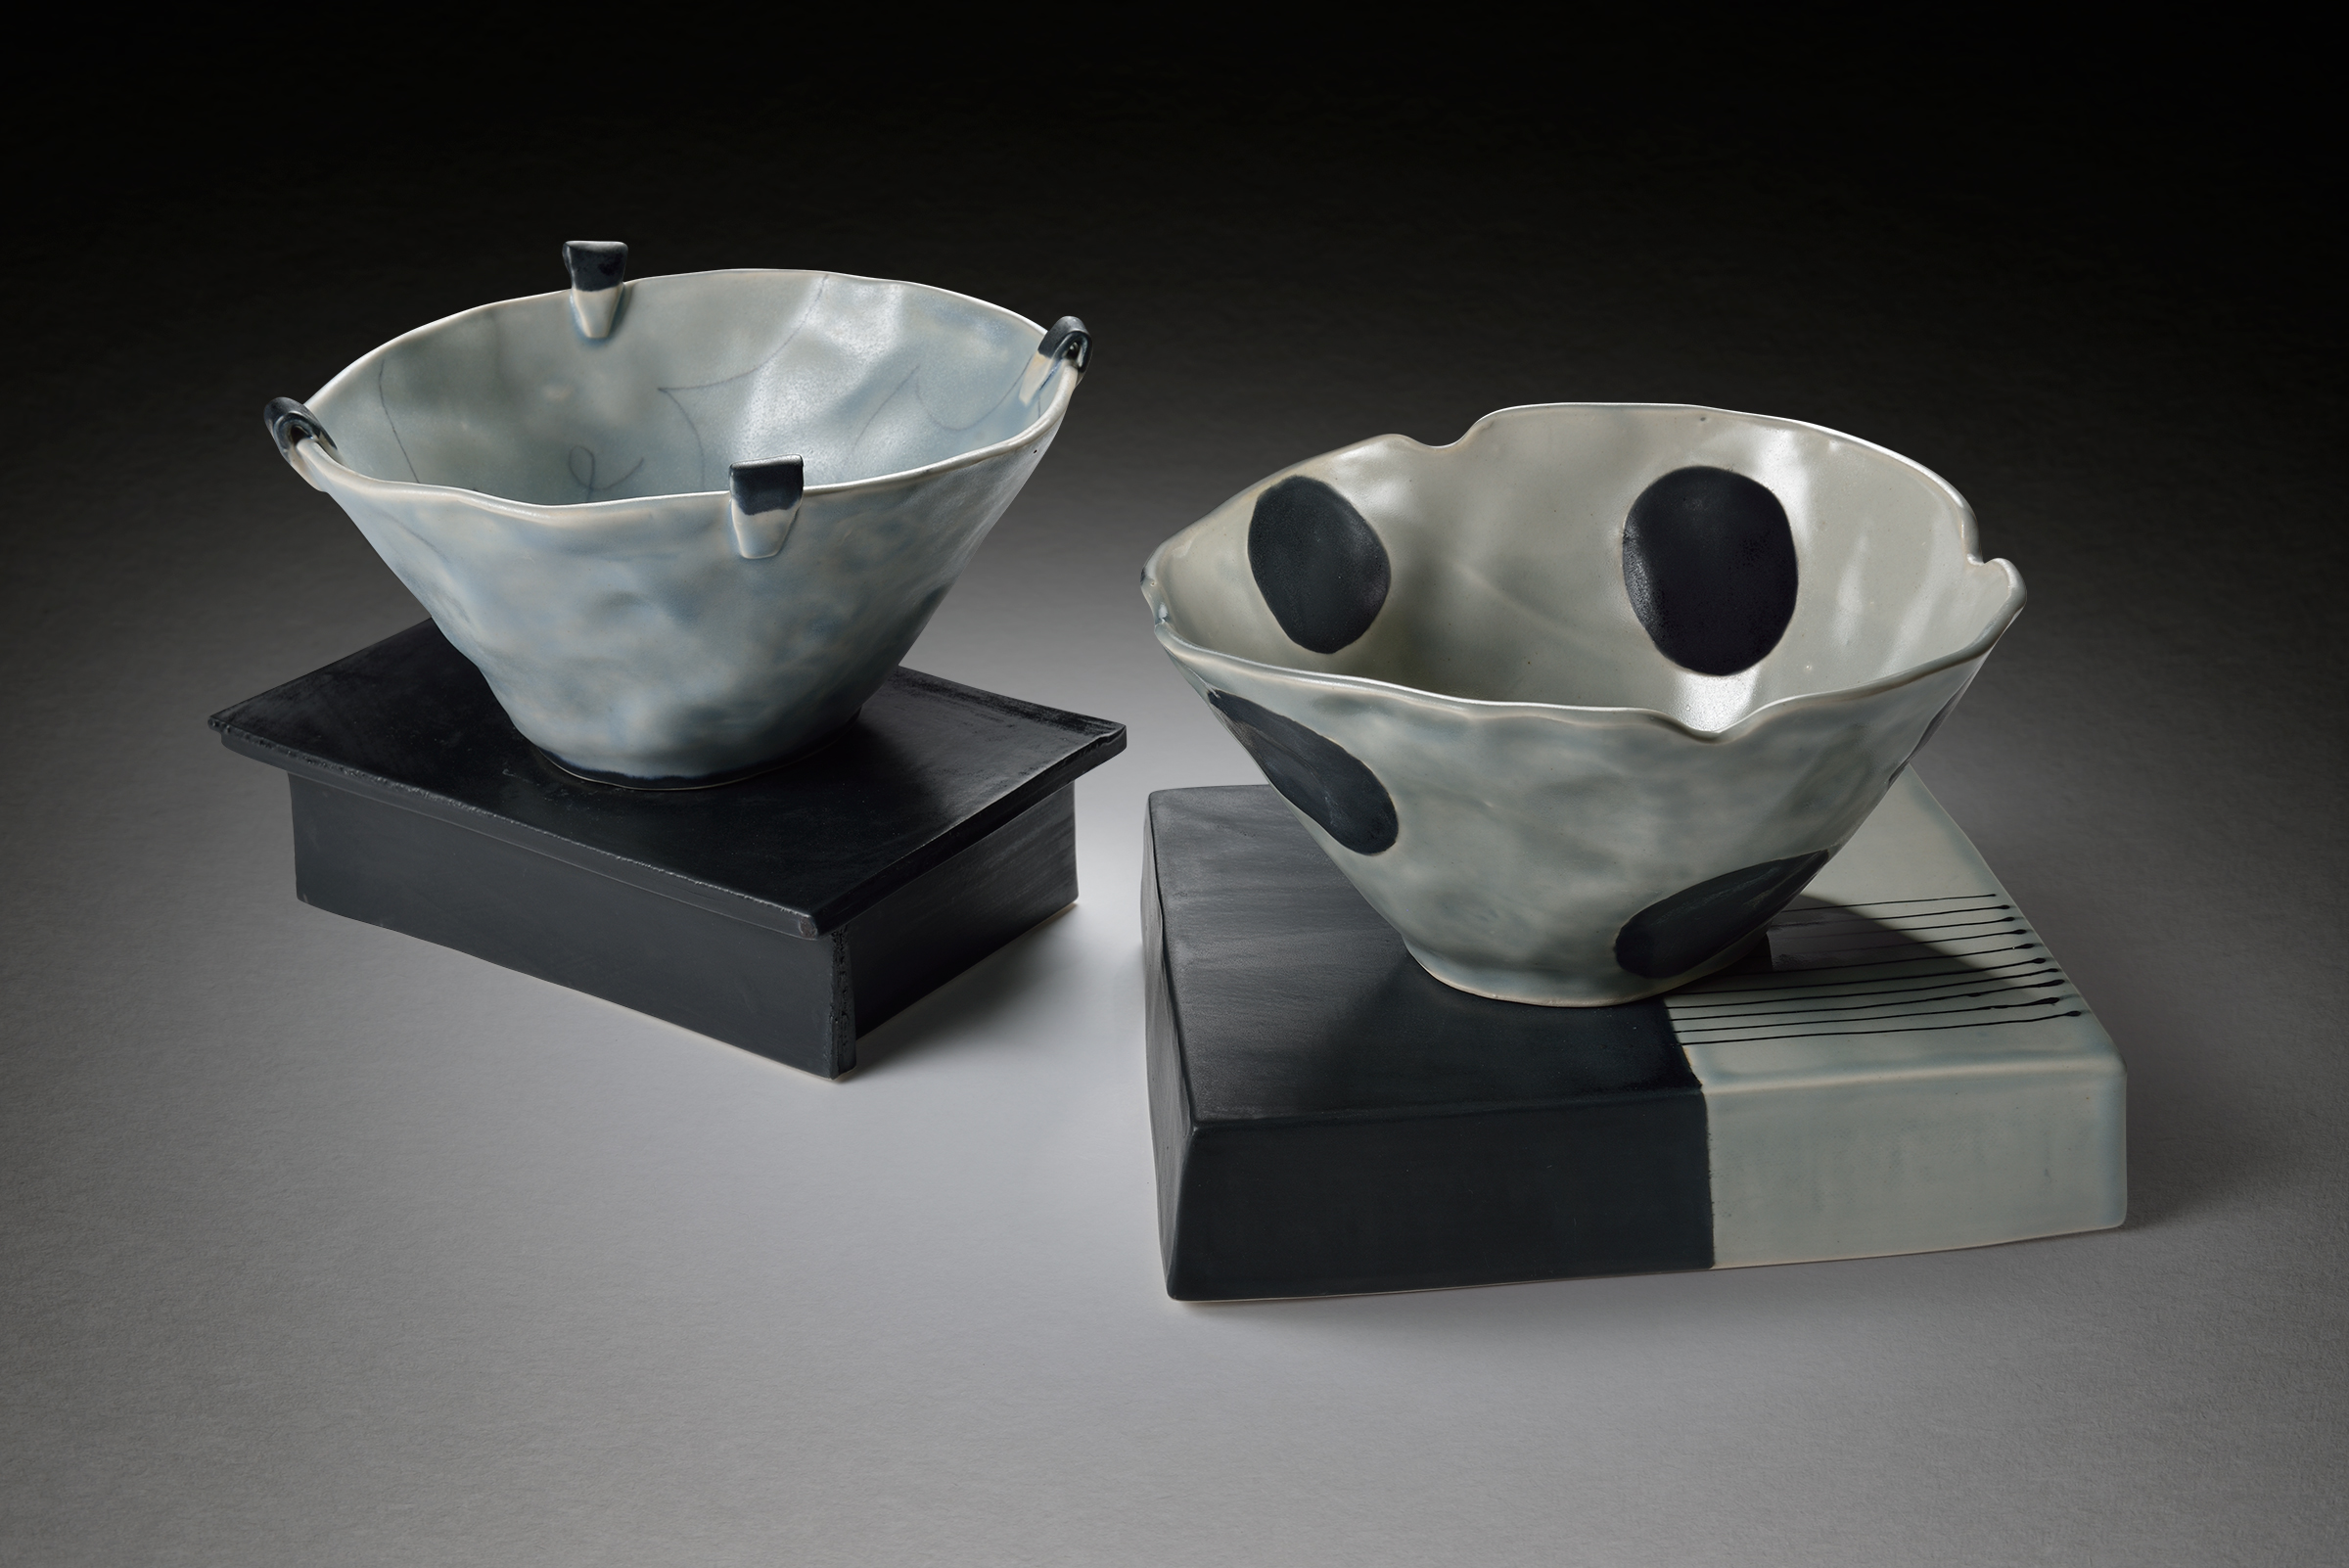 Two Bowls on Bases